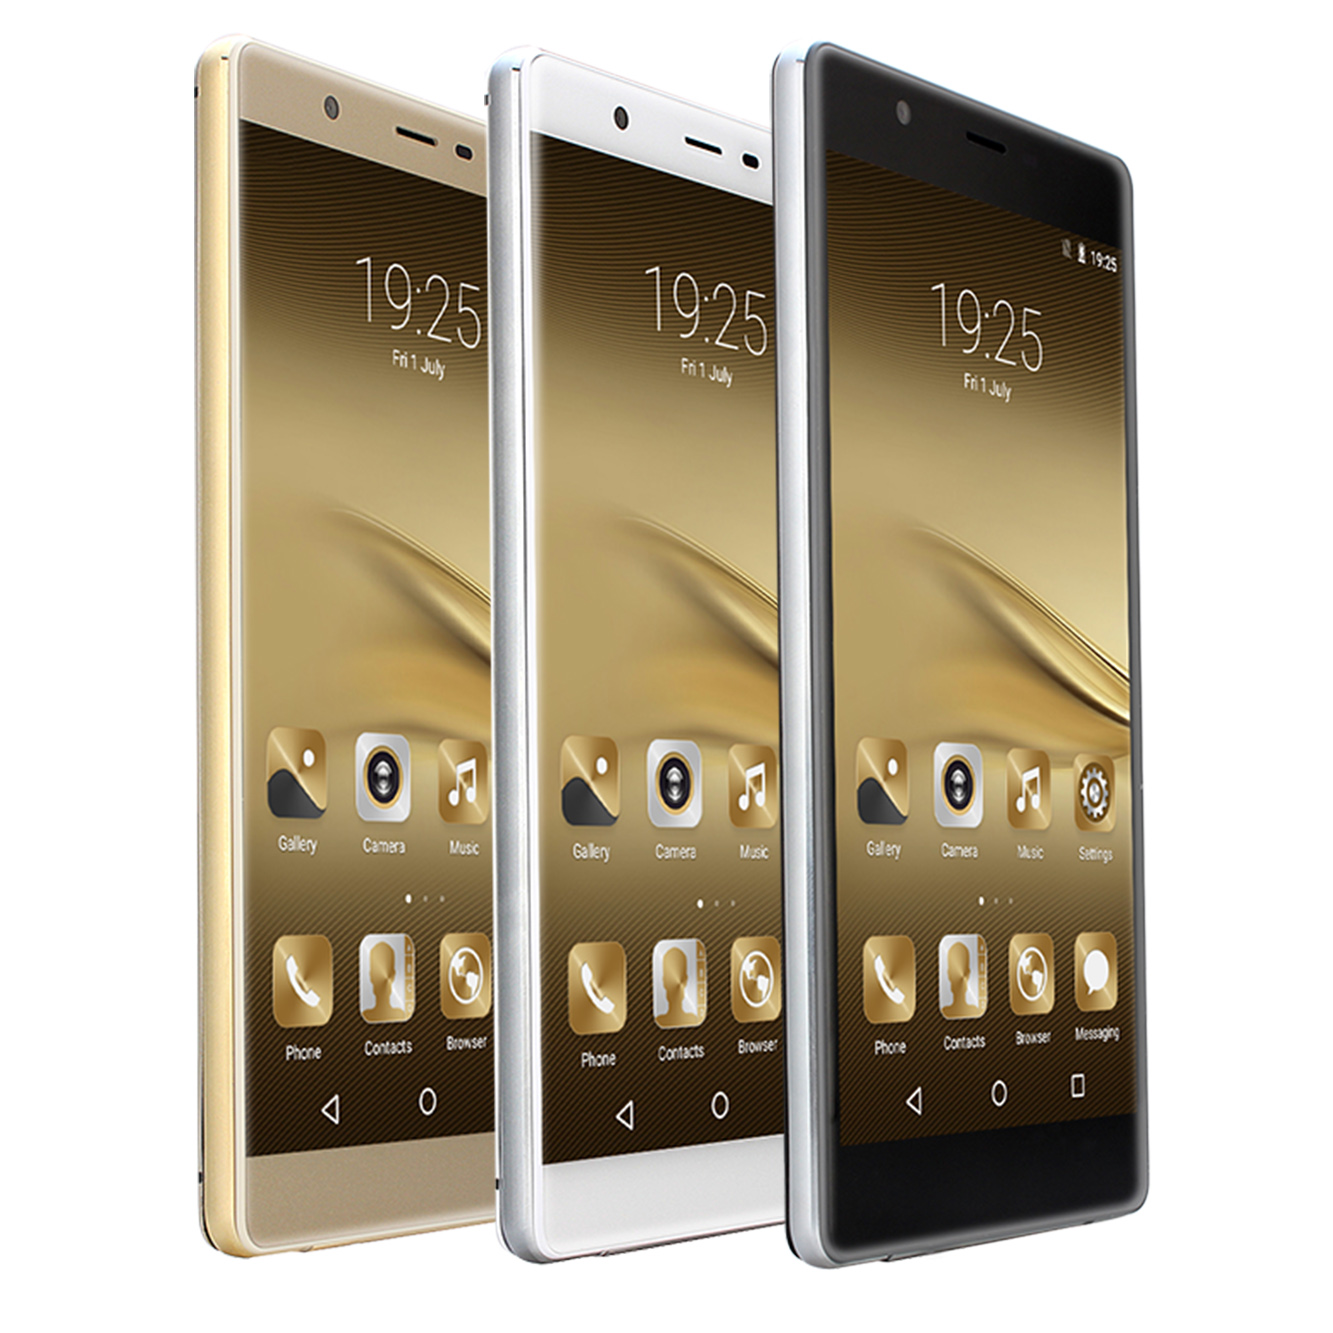 Core android 4 1 mobile phone smartphone unlocked touch white ebay - 6 Inch Gsm 3g Android 5 1 Quad Core Smartphone Straight Talk Cell Phone Unlocked